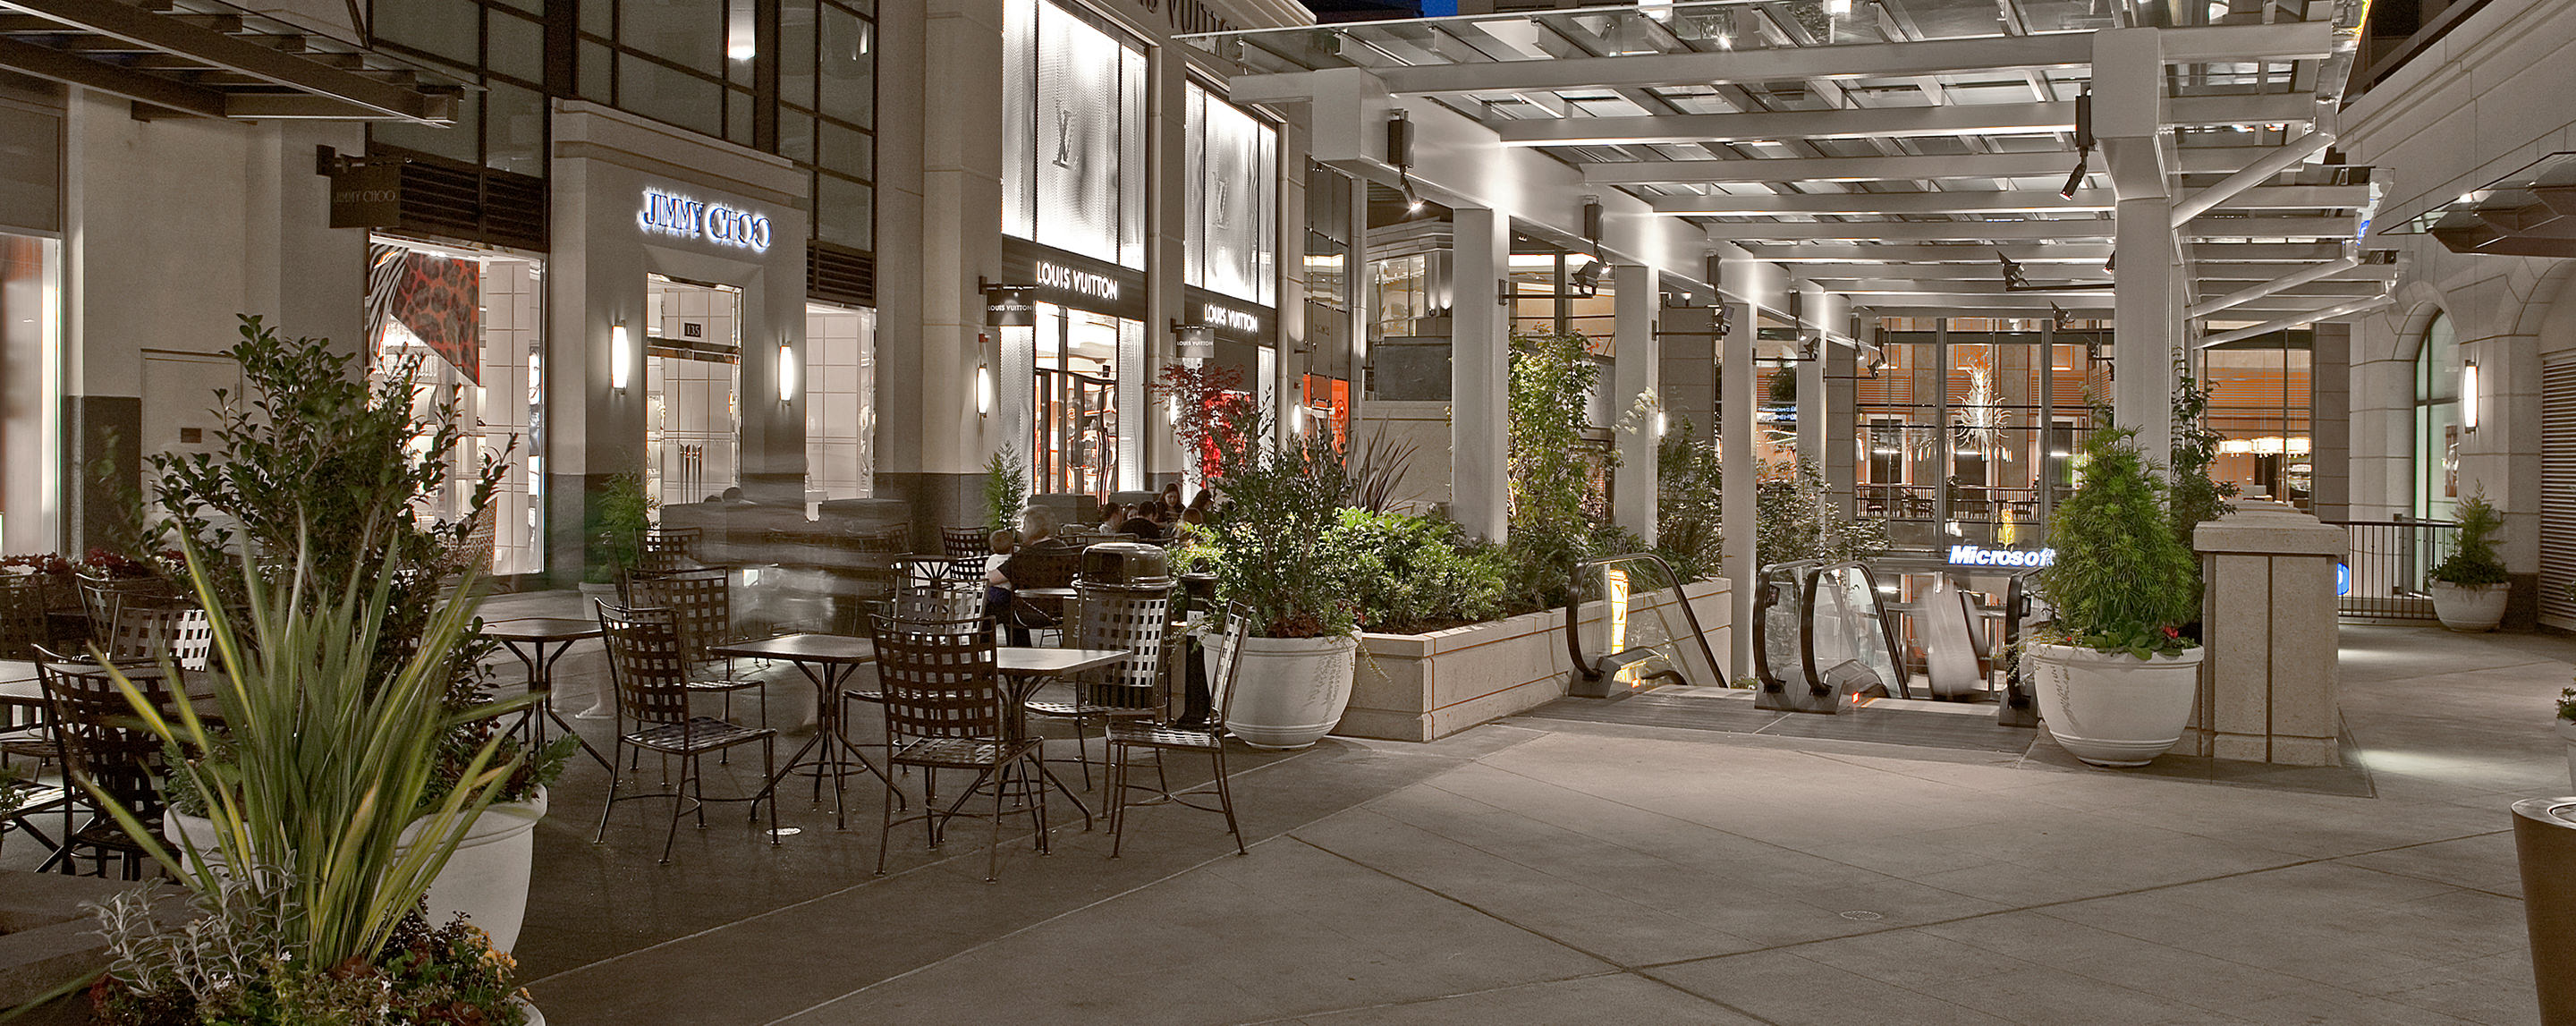 An outdoor common area for shoppers to sit and relax is illuminated at night by storefronts at The Shops at Bravern.